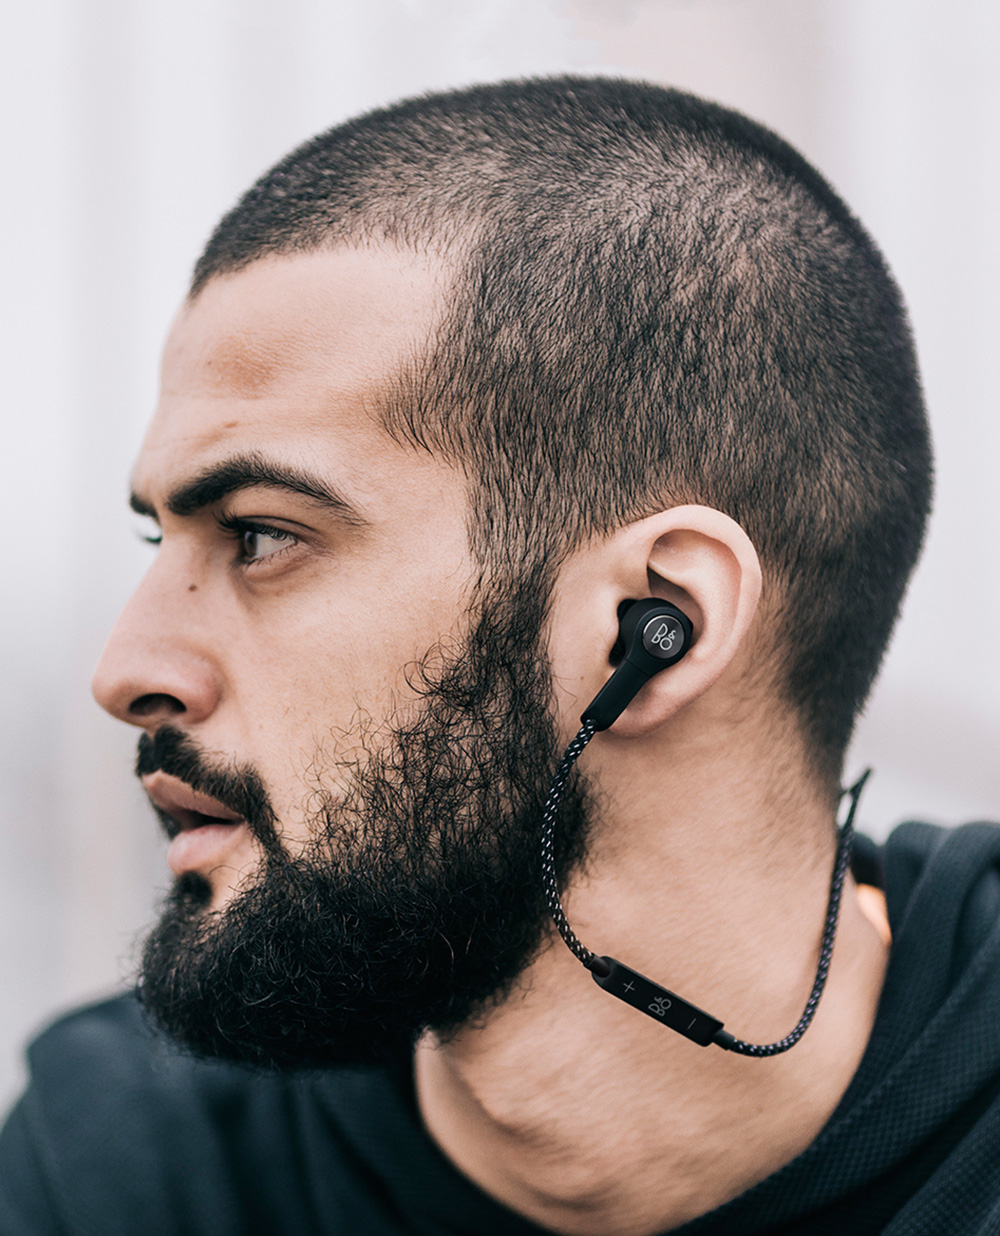 Beoplay H5 (6)